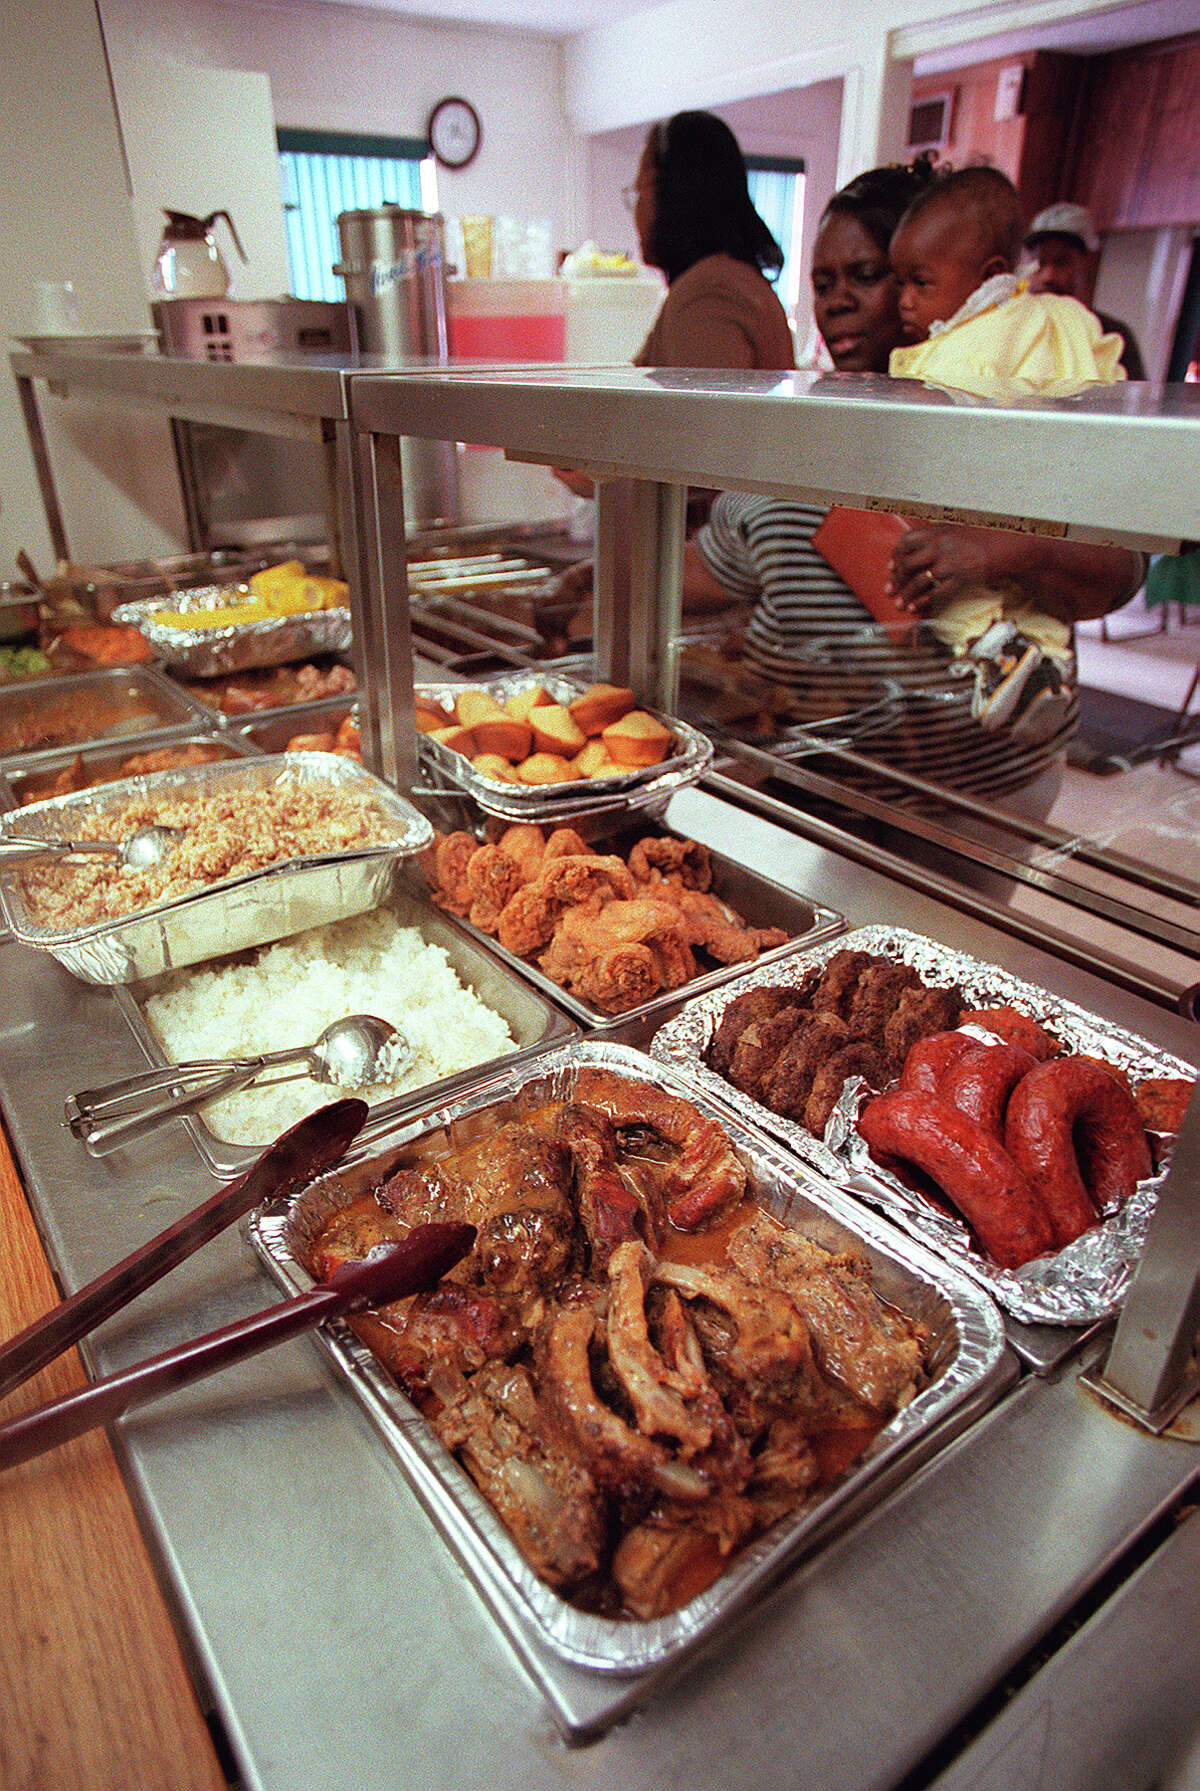 The buffet line includes fried chicken , saudage, pork ribs, cornbread, sweet potatoes, greens, squash and corn on the cob.